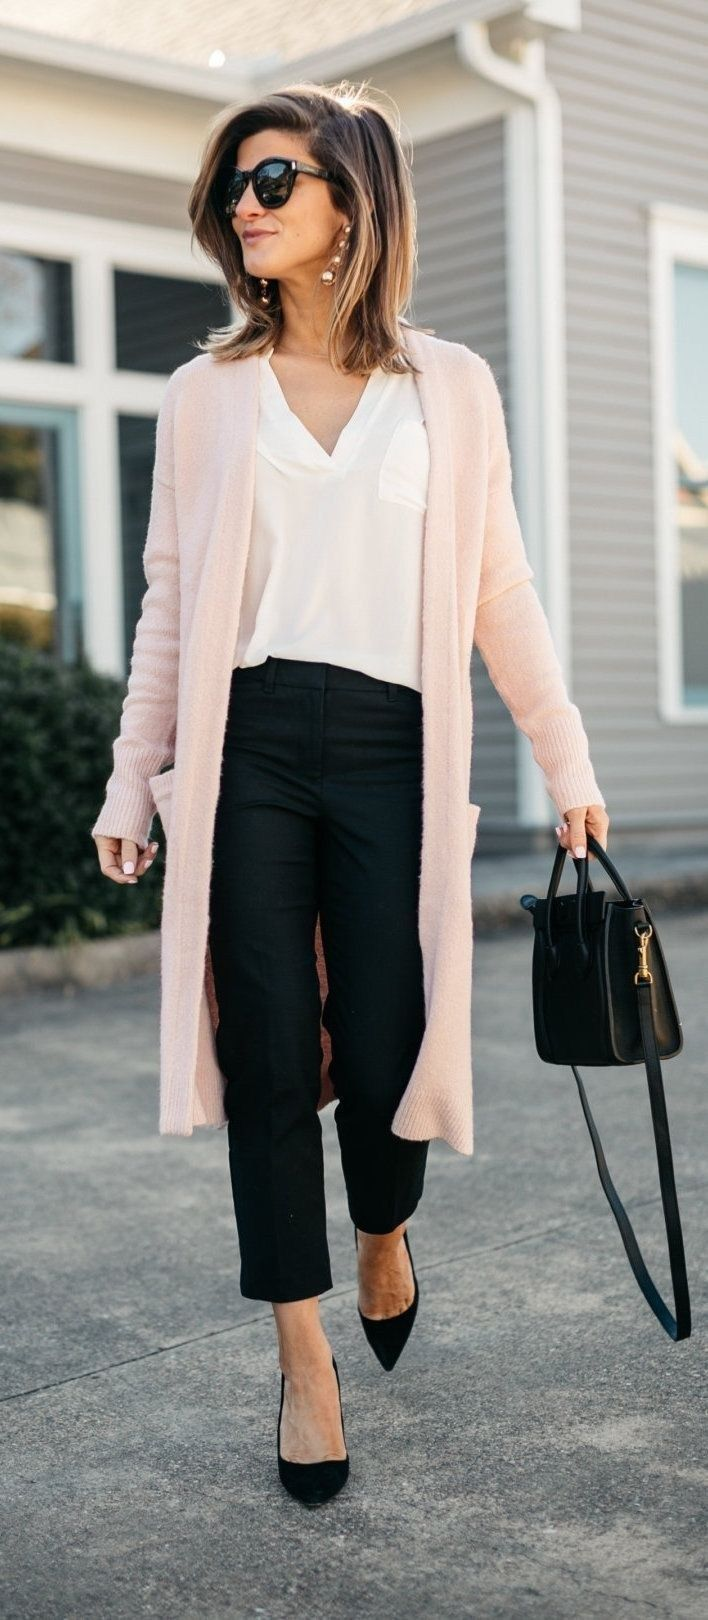 best casual outfit ideas for women this year 2019 22